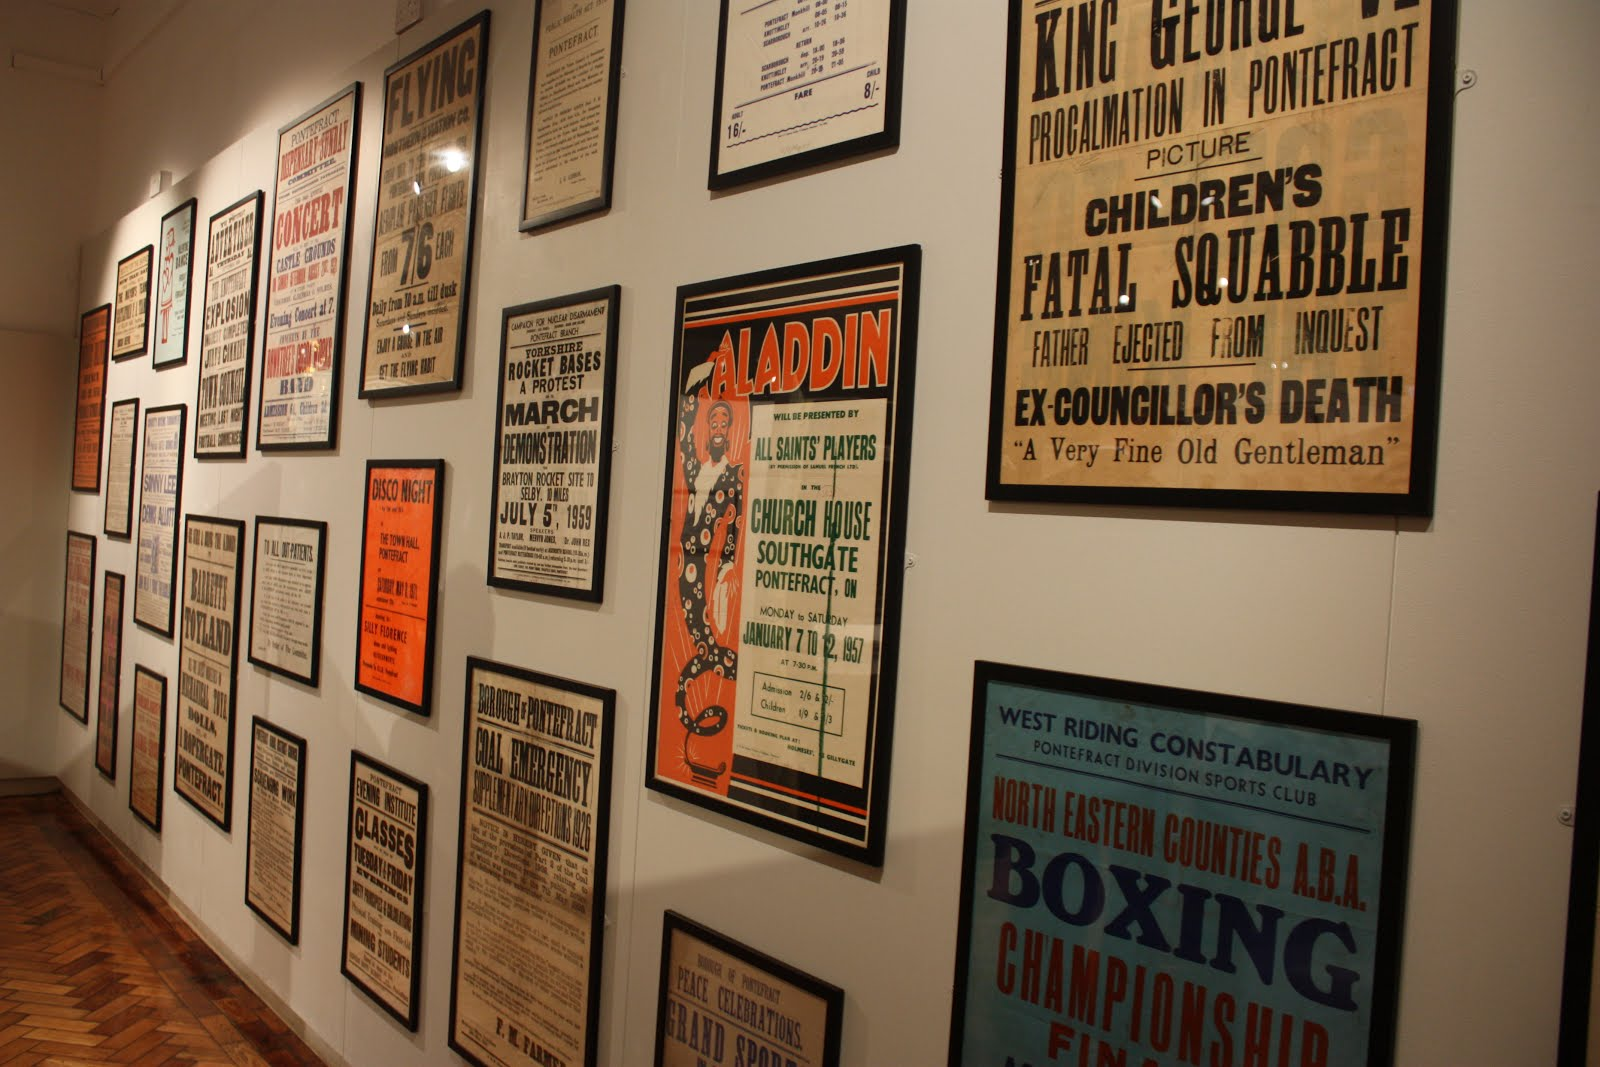 Poster design exhibition design large format wakefield - Pomfret S Printery Exhibition Now Open In Pontefract Museum